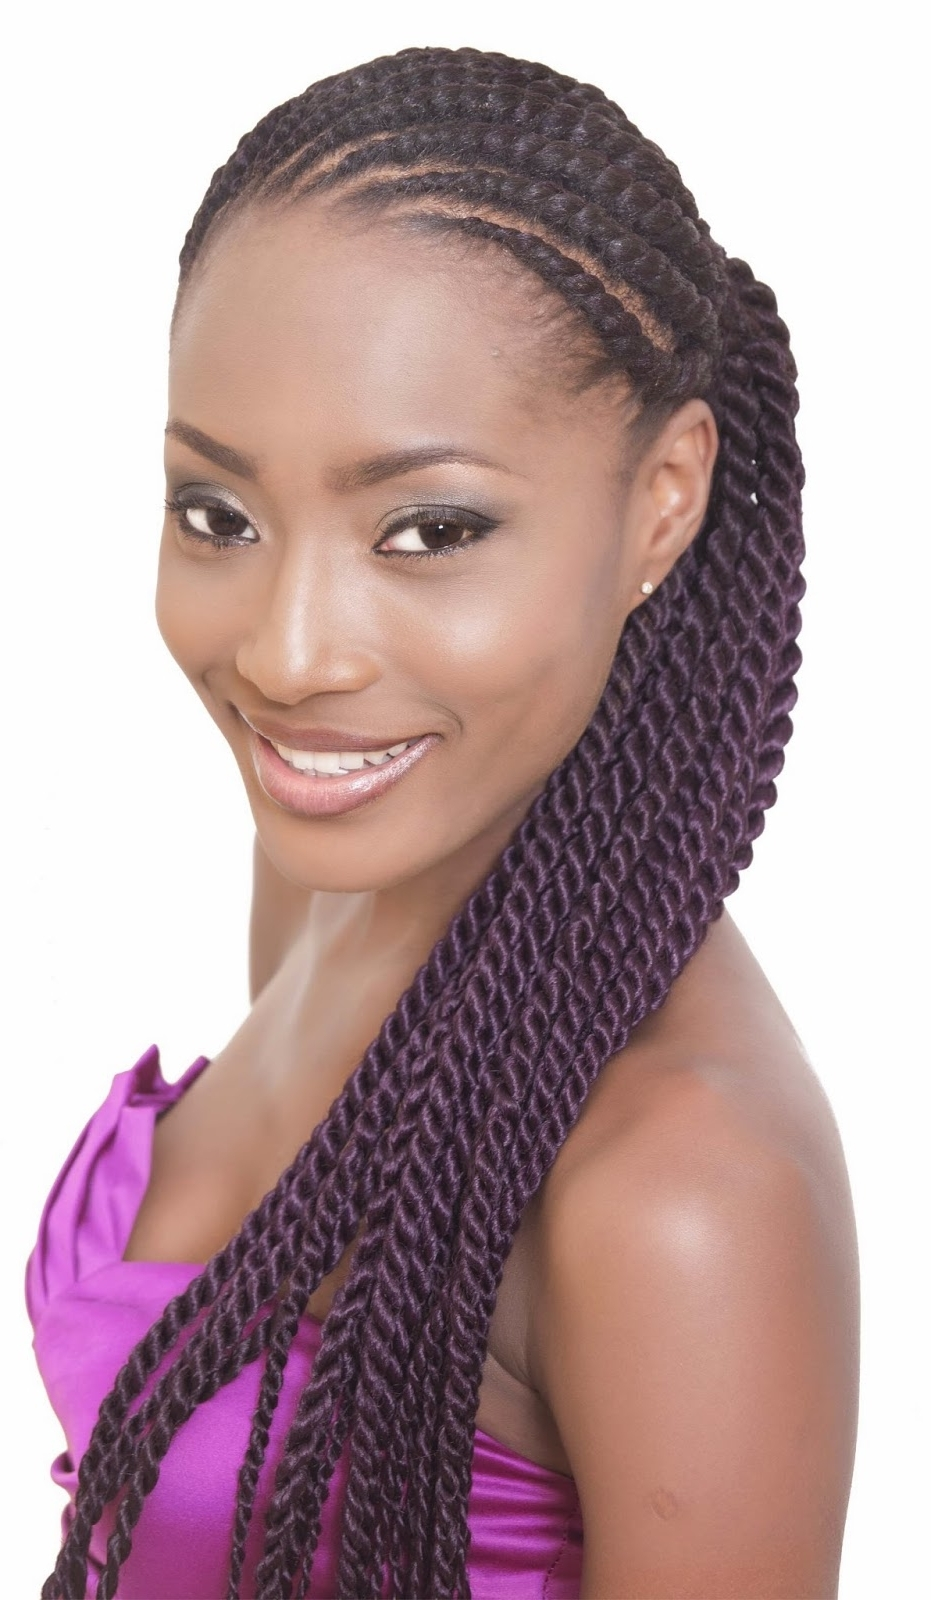 Ladies, Have You Tried These Ghana Braids! (View 11 of 14)